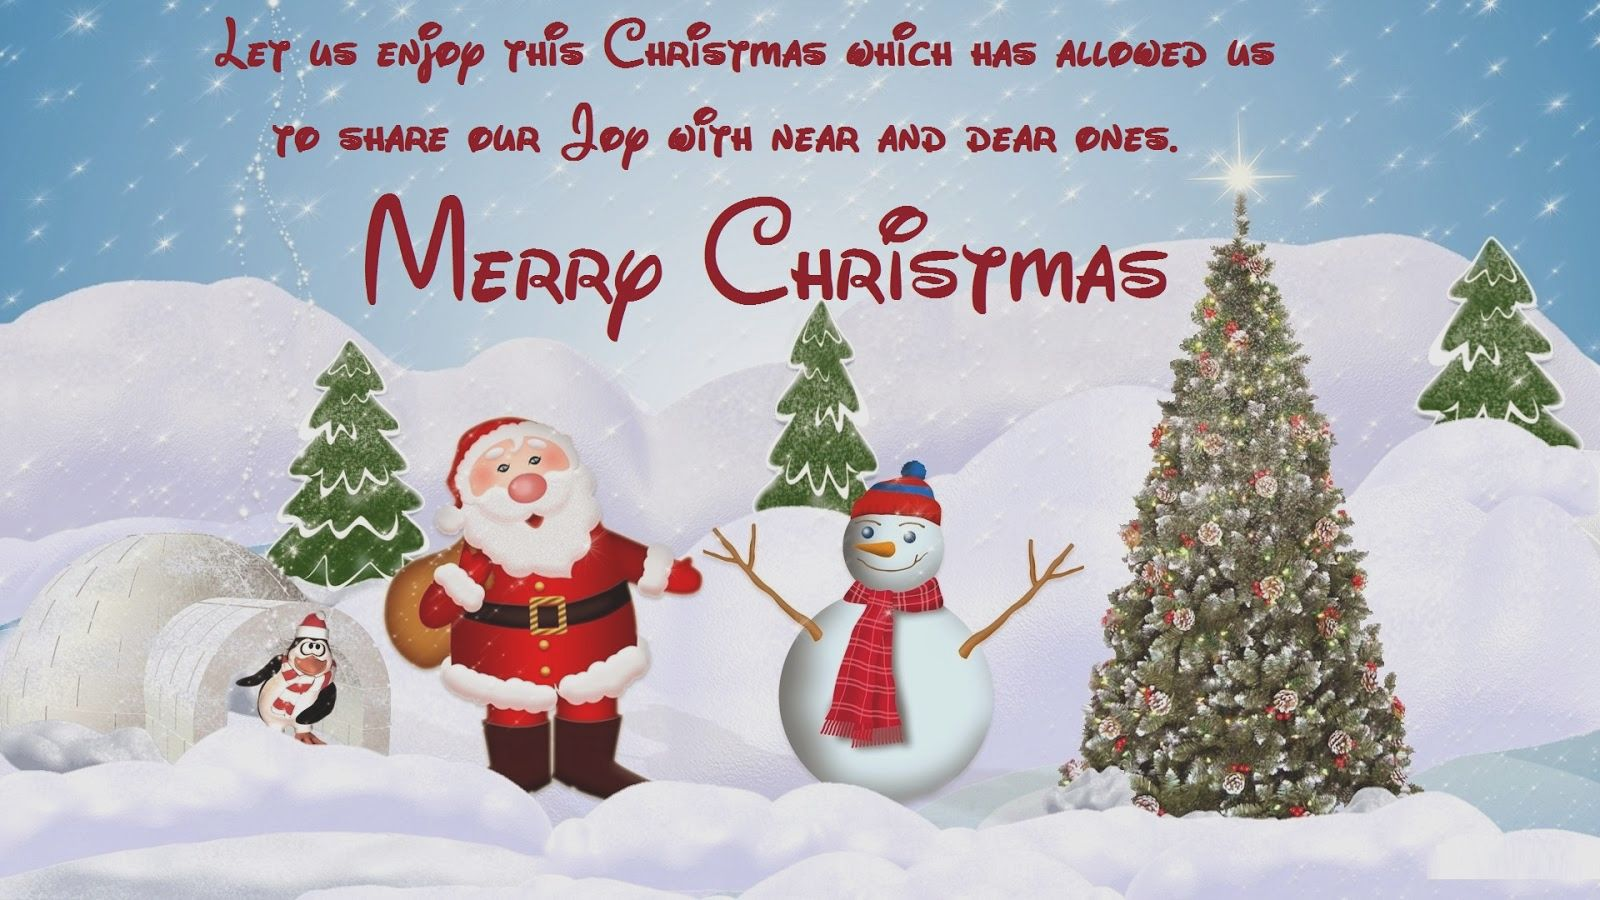 Merry christmas greetings messages images and wishes quotes a december is with full of white snow and a special occasion that represent peace and santa merry christmas and have m4hsunfo